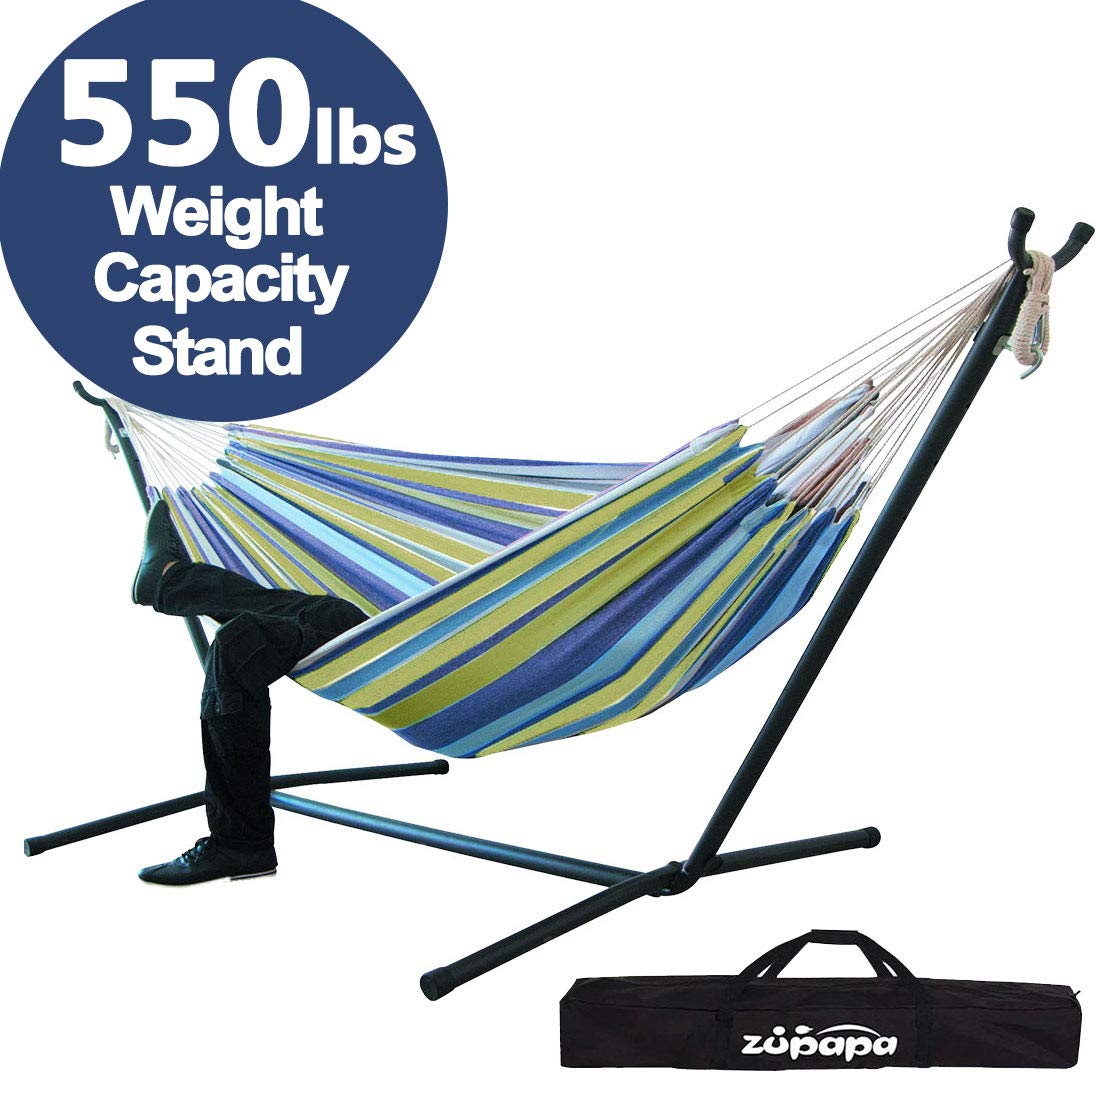 Zupapa Double Hammock with Stand and Carrying Case, Accommodates 2 People, 550 Pound Capacity Portable Perfect for Garden, Deck, Yard - (Oasis Stripe)